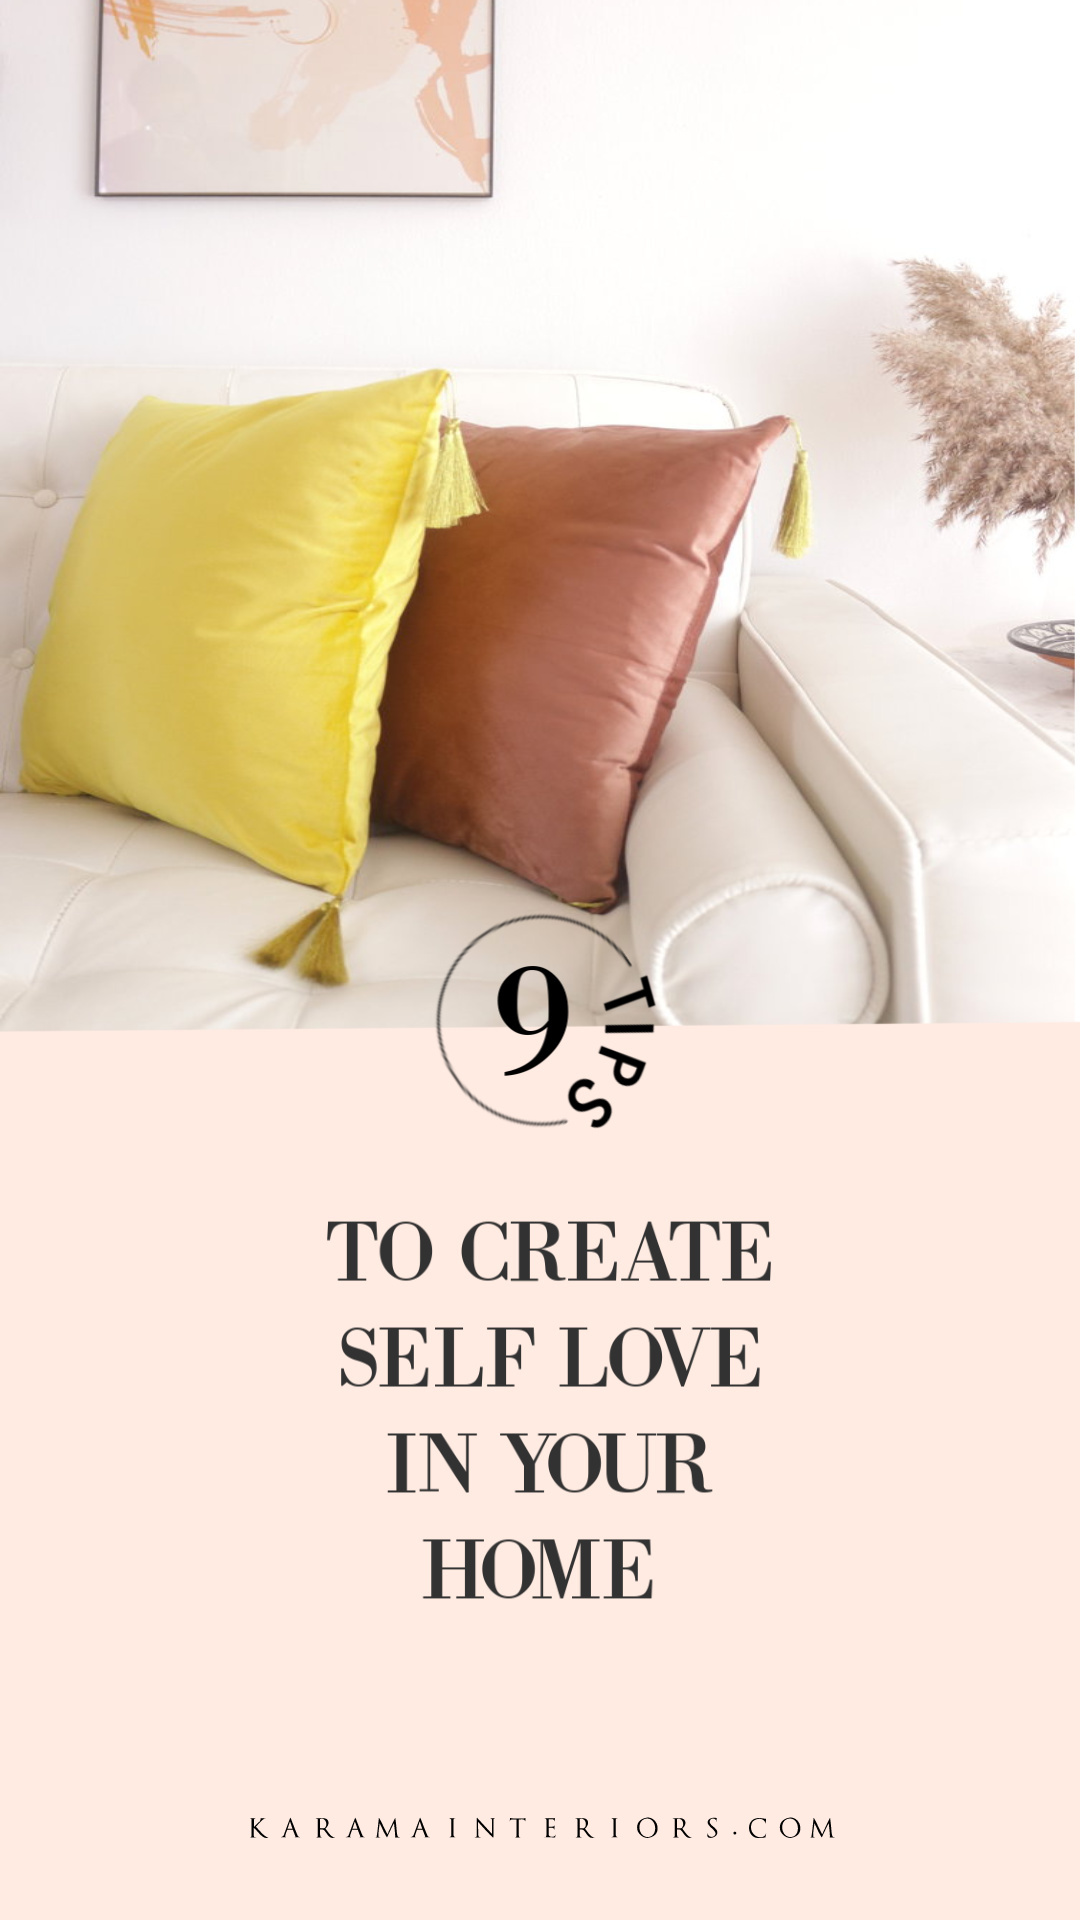 9 tips to create self love in your home- Karama Interiors.jpg